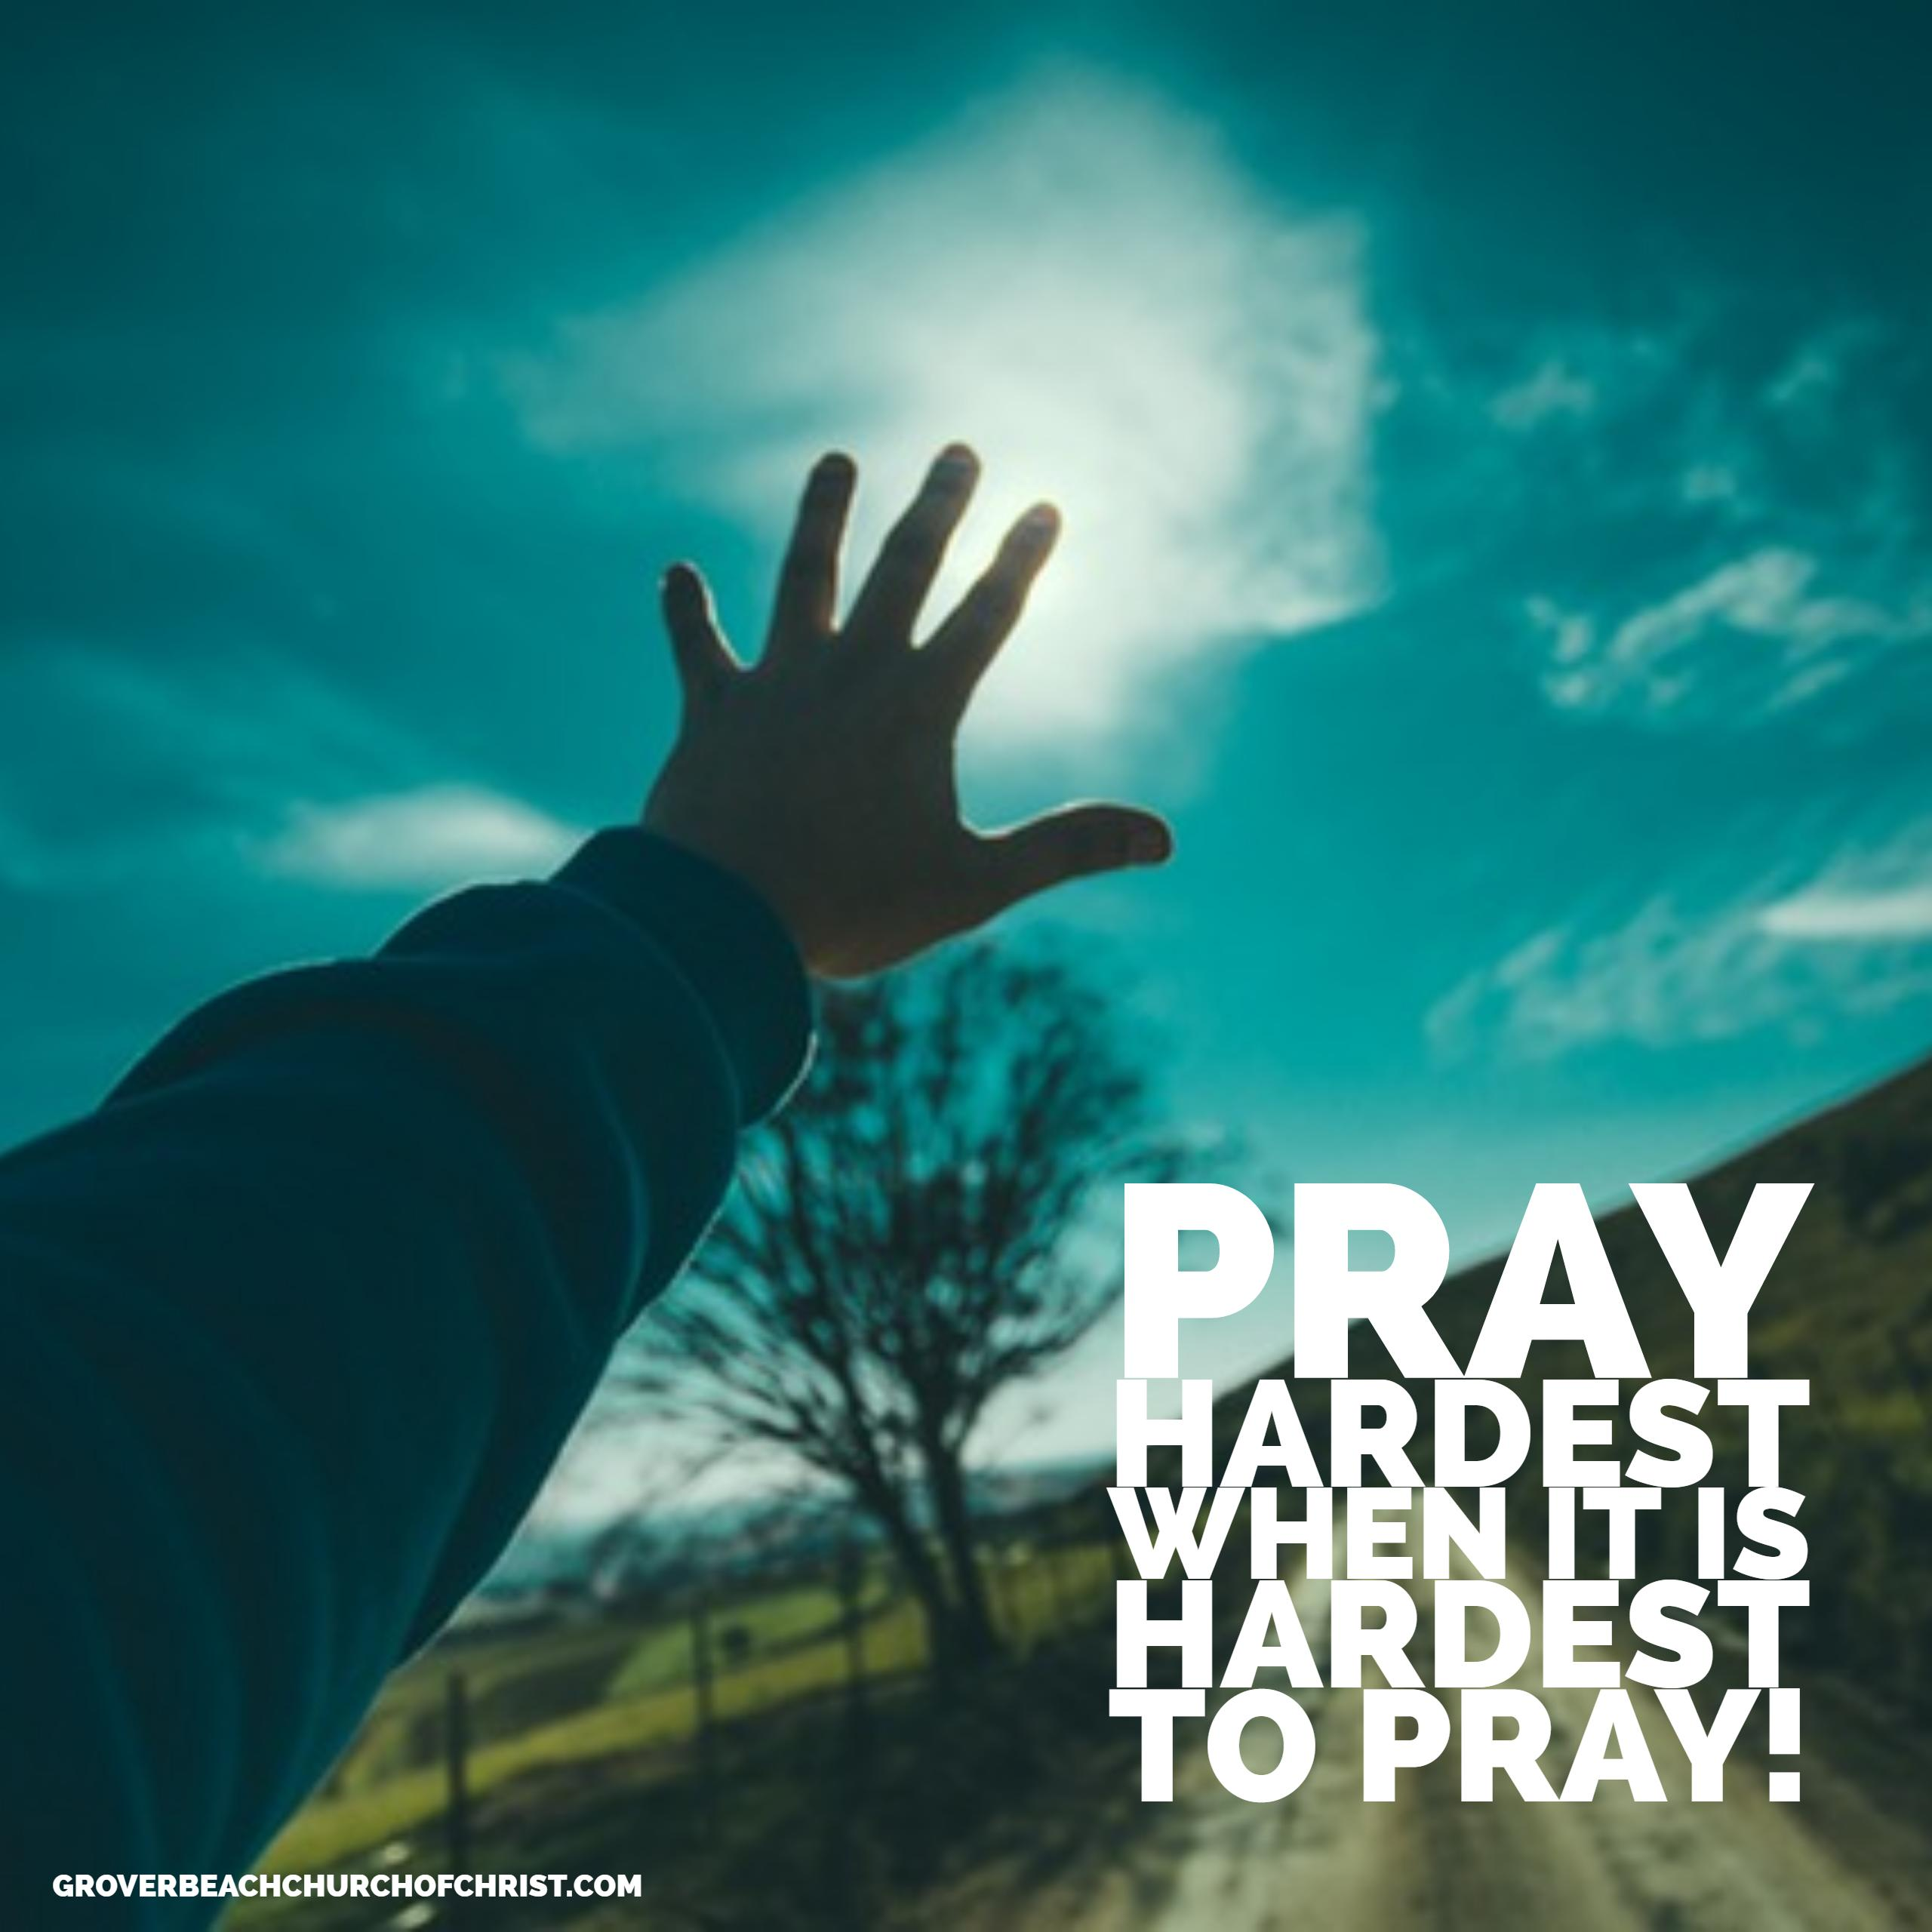 pray-hardest-when-it-is